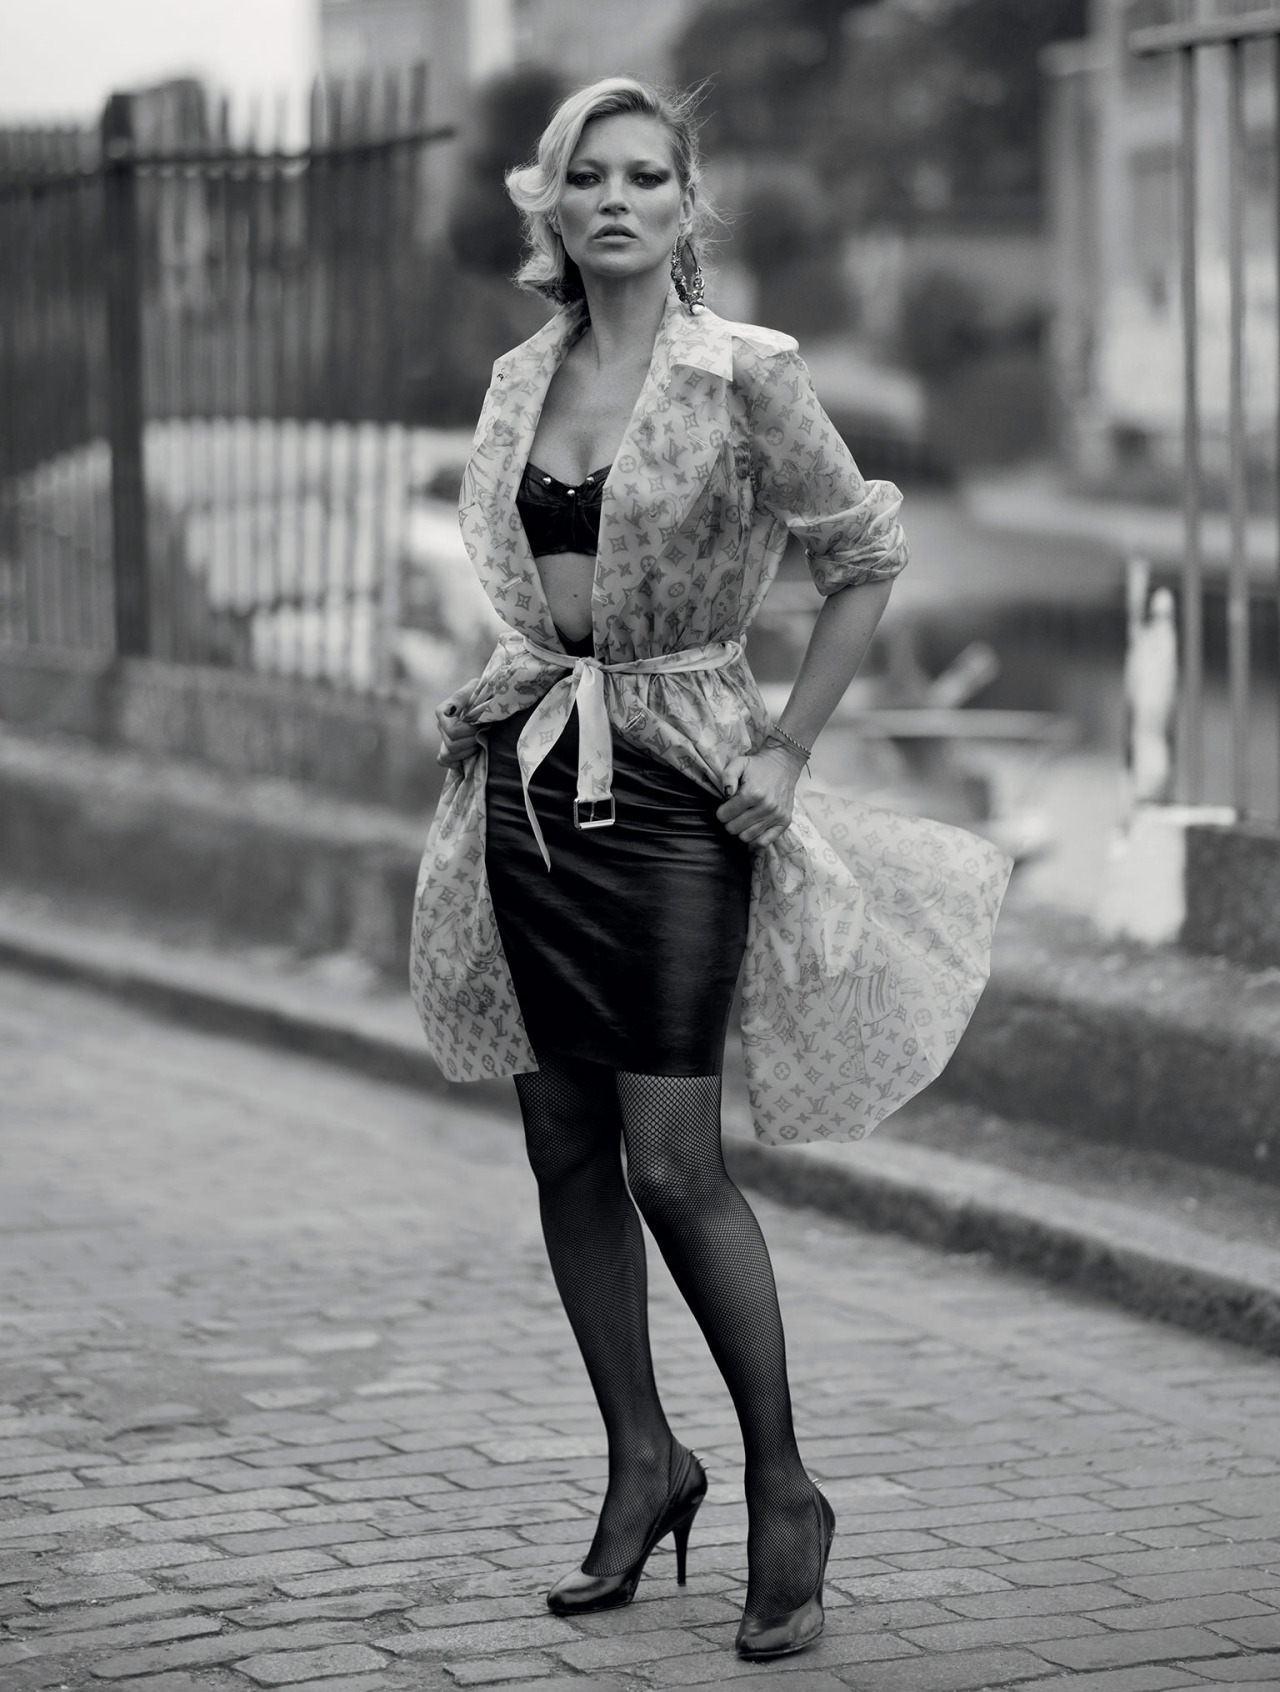 kate-moss-by-ethan-james-green-4